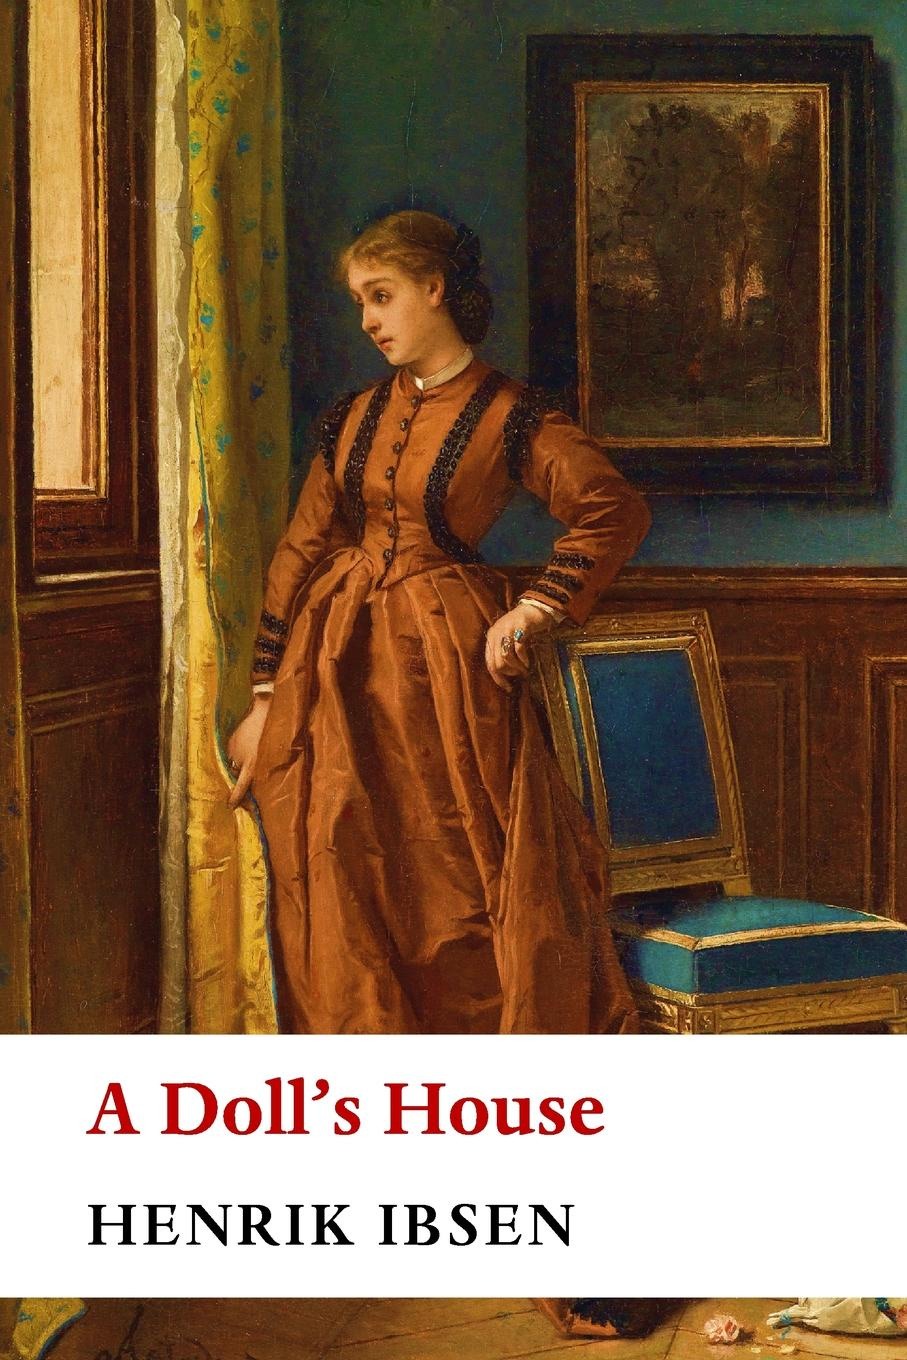 Henrik Ibsen A Doll.s House anstey f mr punch s pocket ibsen – a collection of some of the master s best known dramas